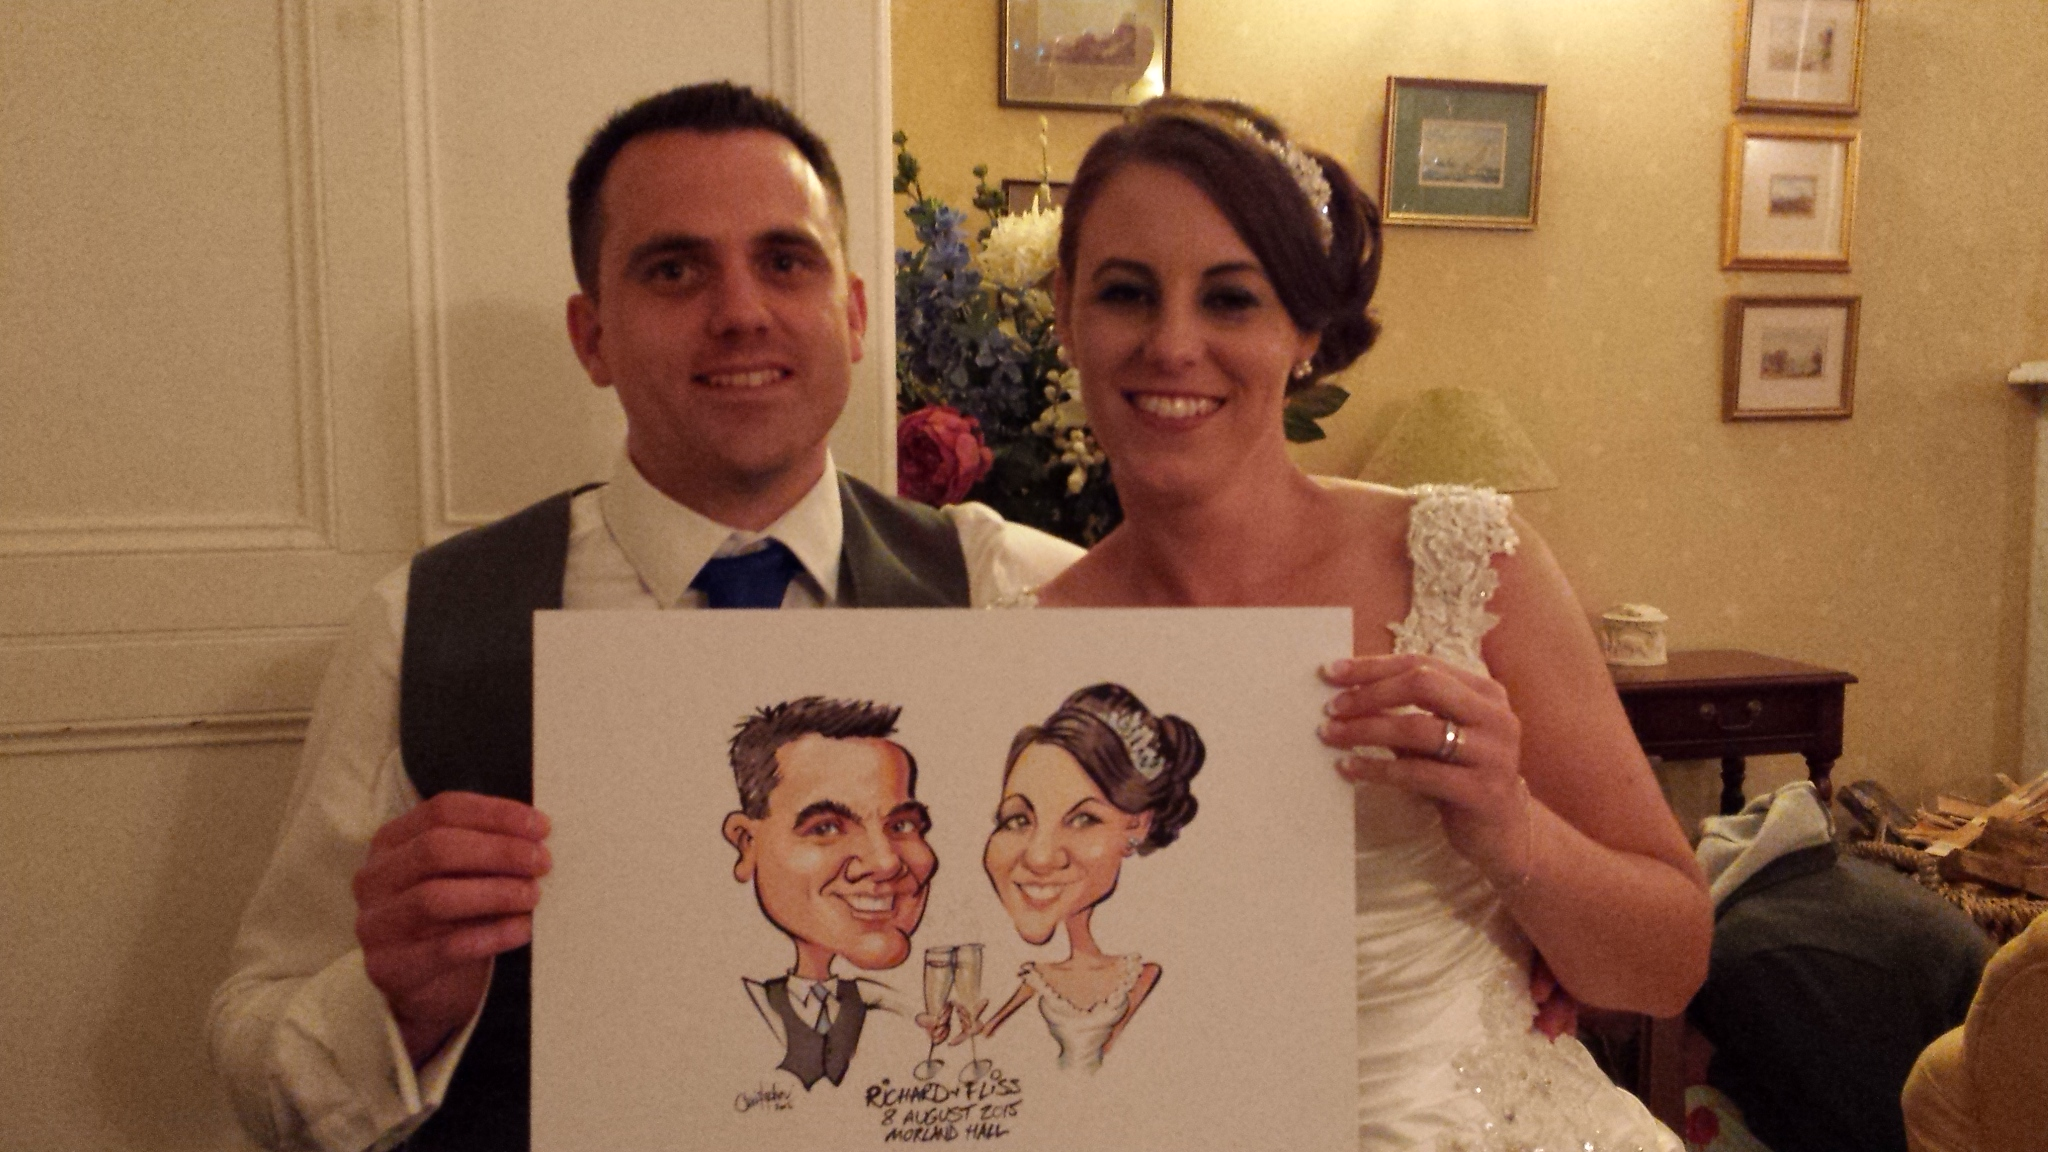 Colour caricature of bride and groom for guests to sign